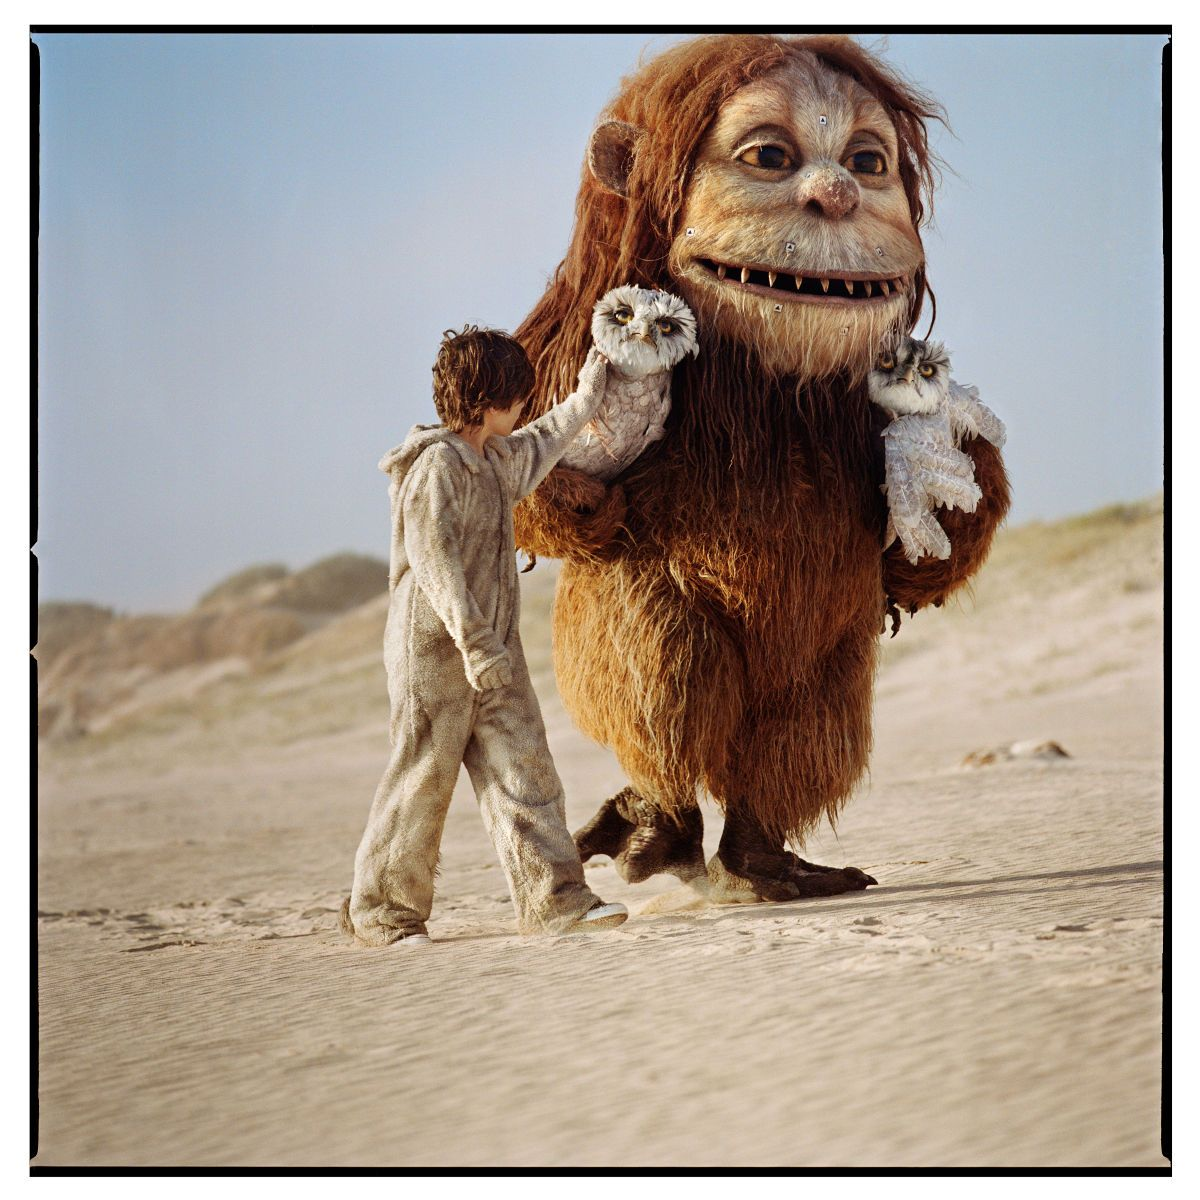 Where The Wild Things Are, 2010.  Director: Spike Jonze